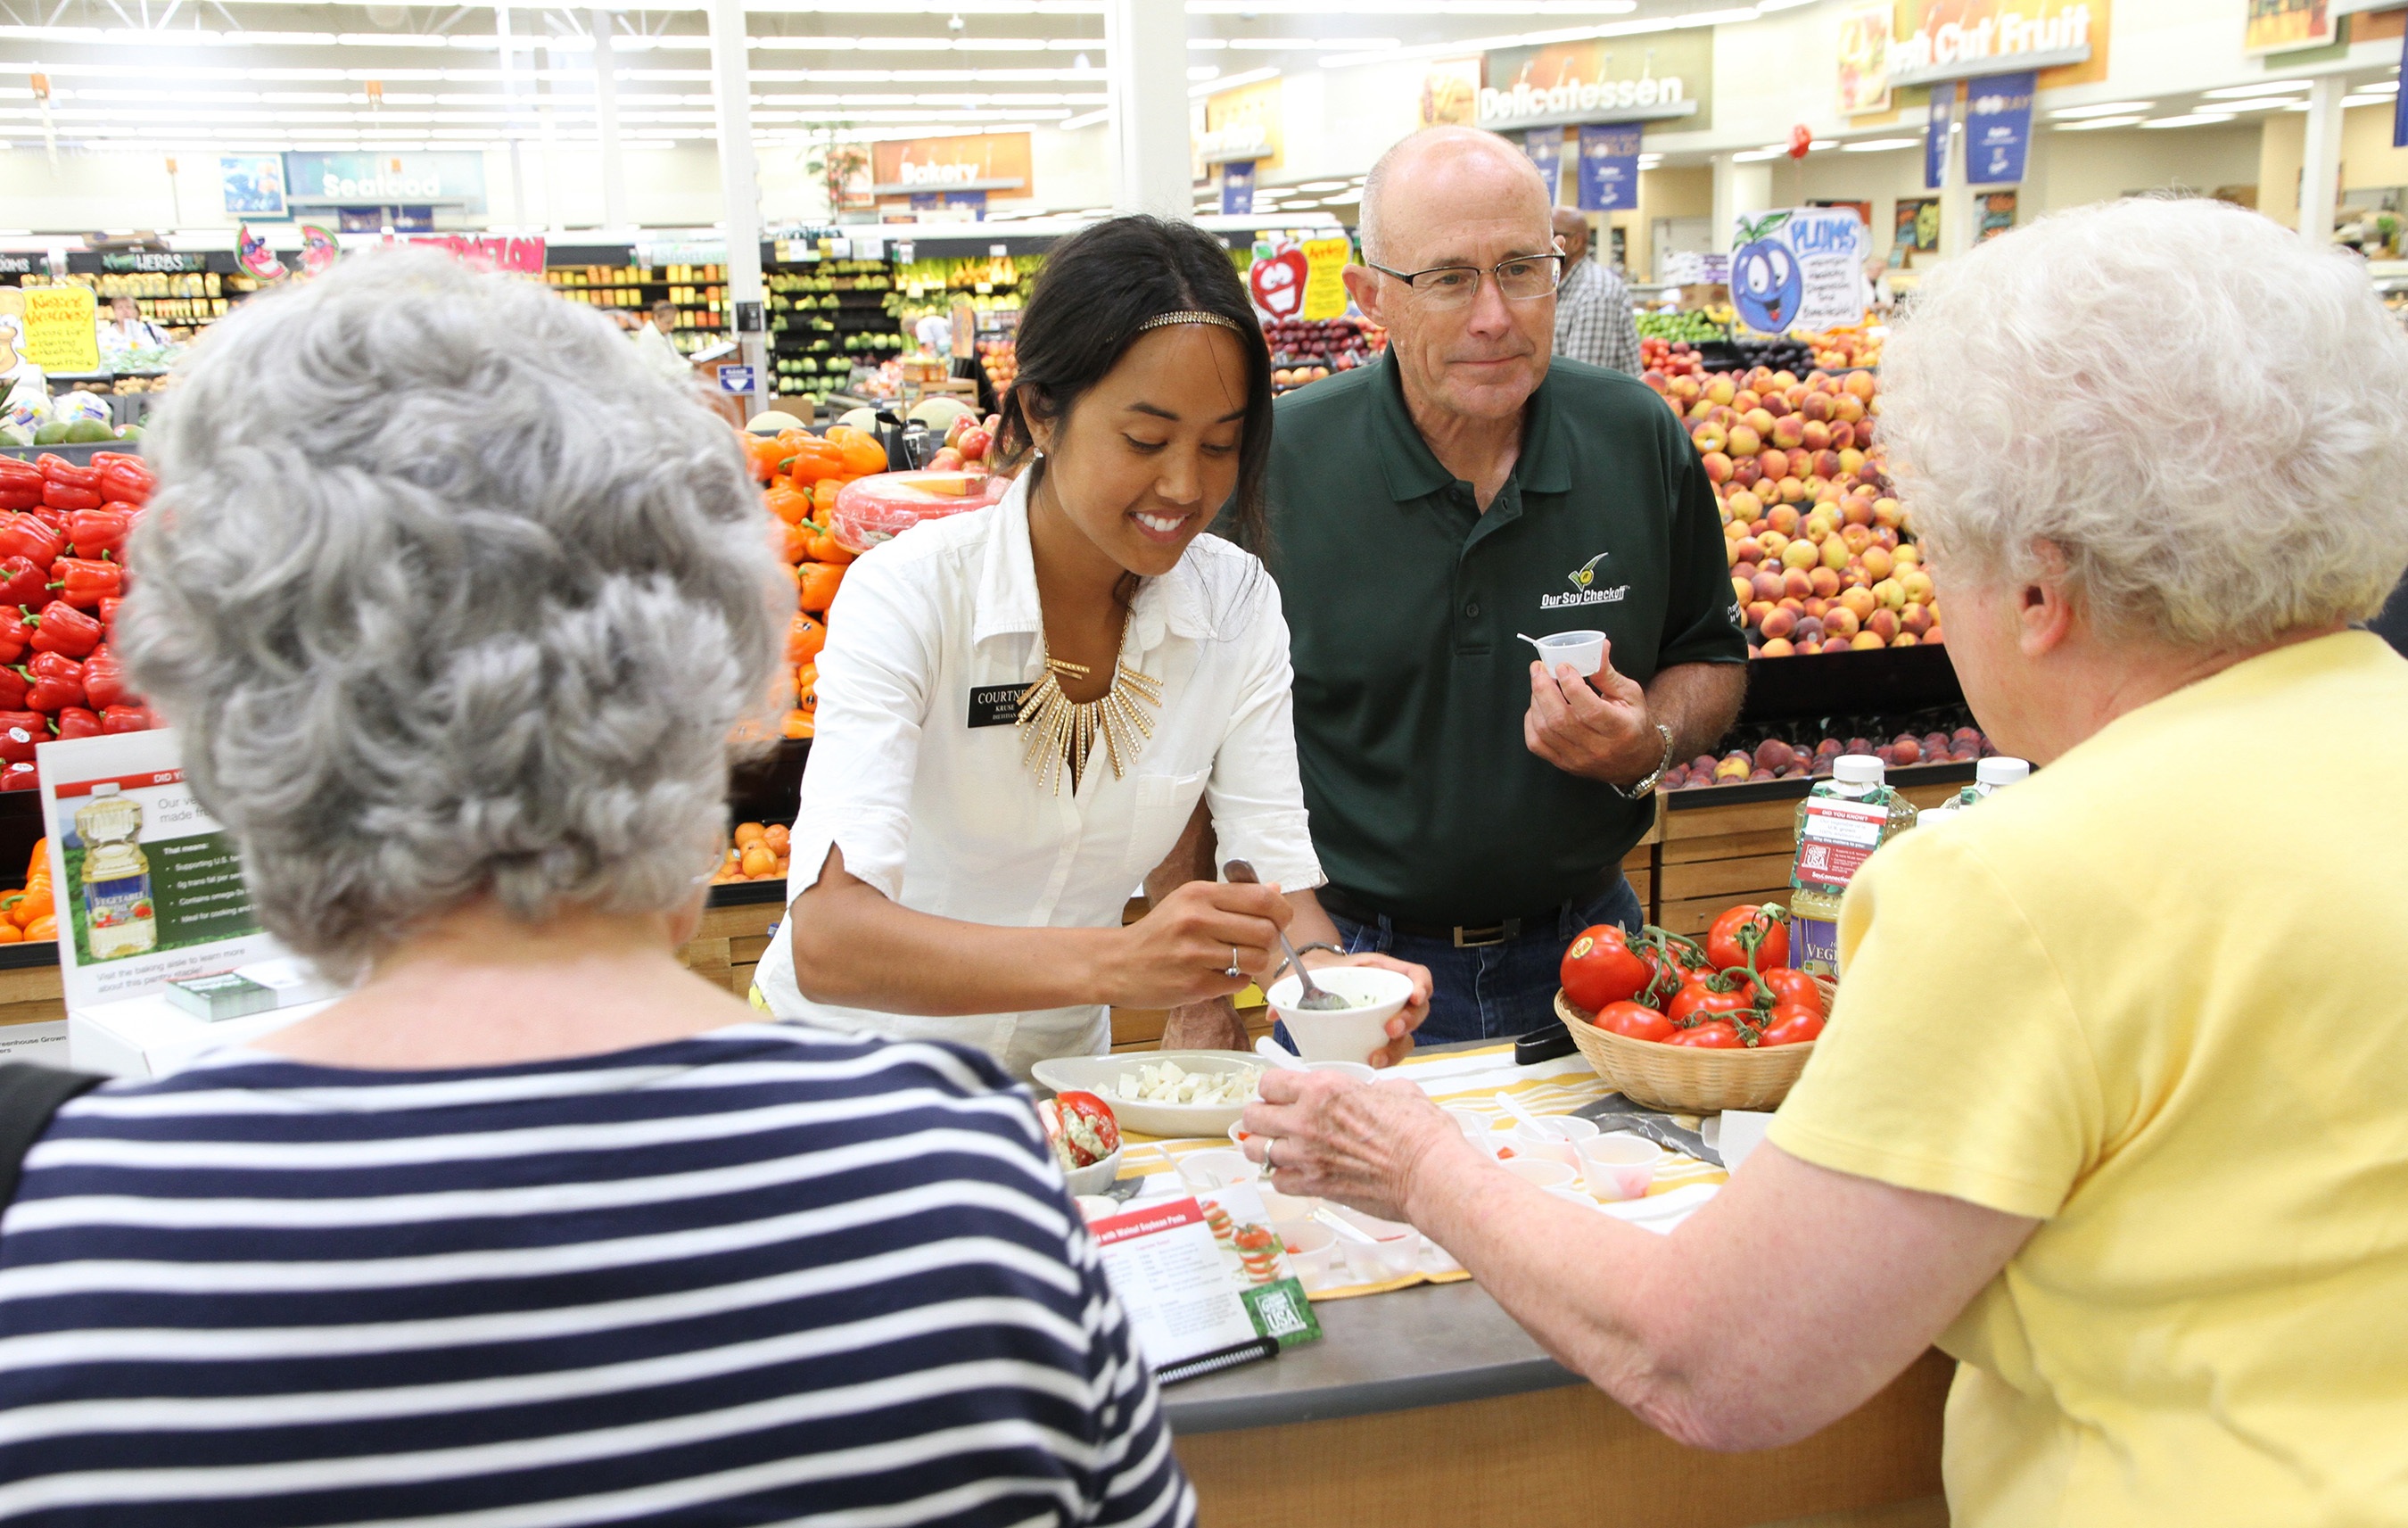 United Soybean Board Chairman Bob Haselwood shares the story of soy with grocery shoppers.